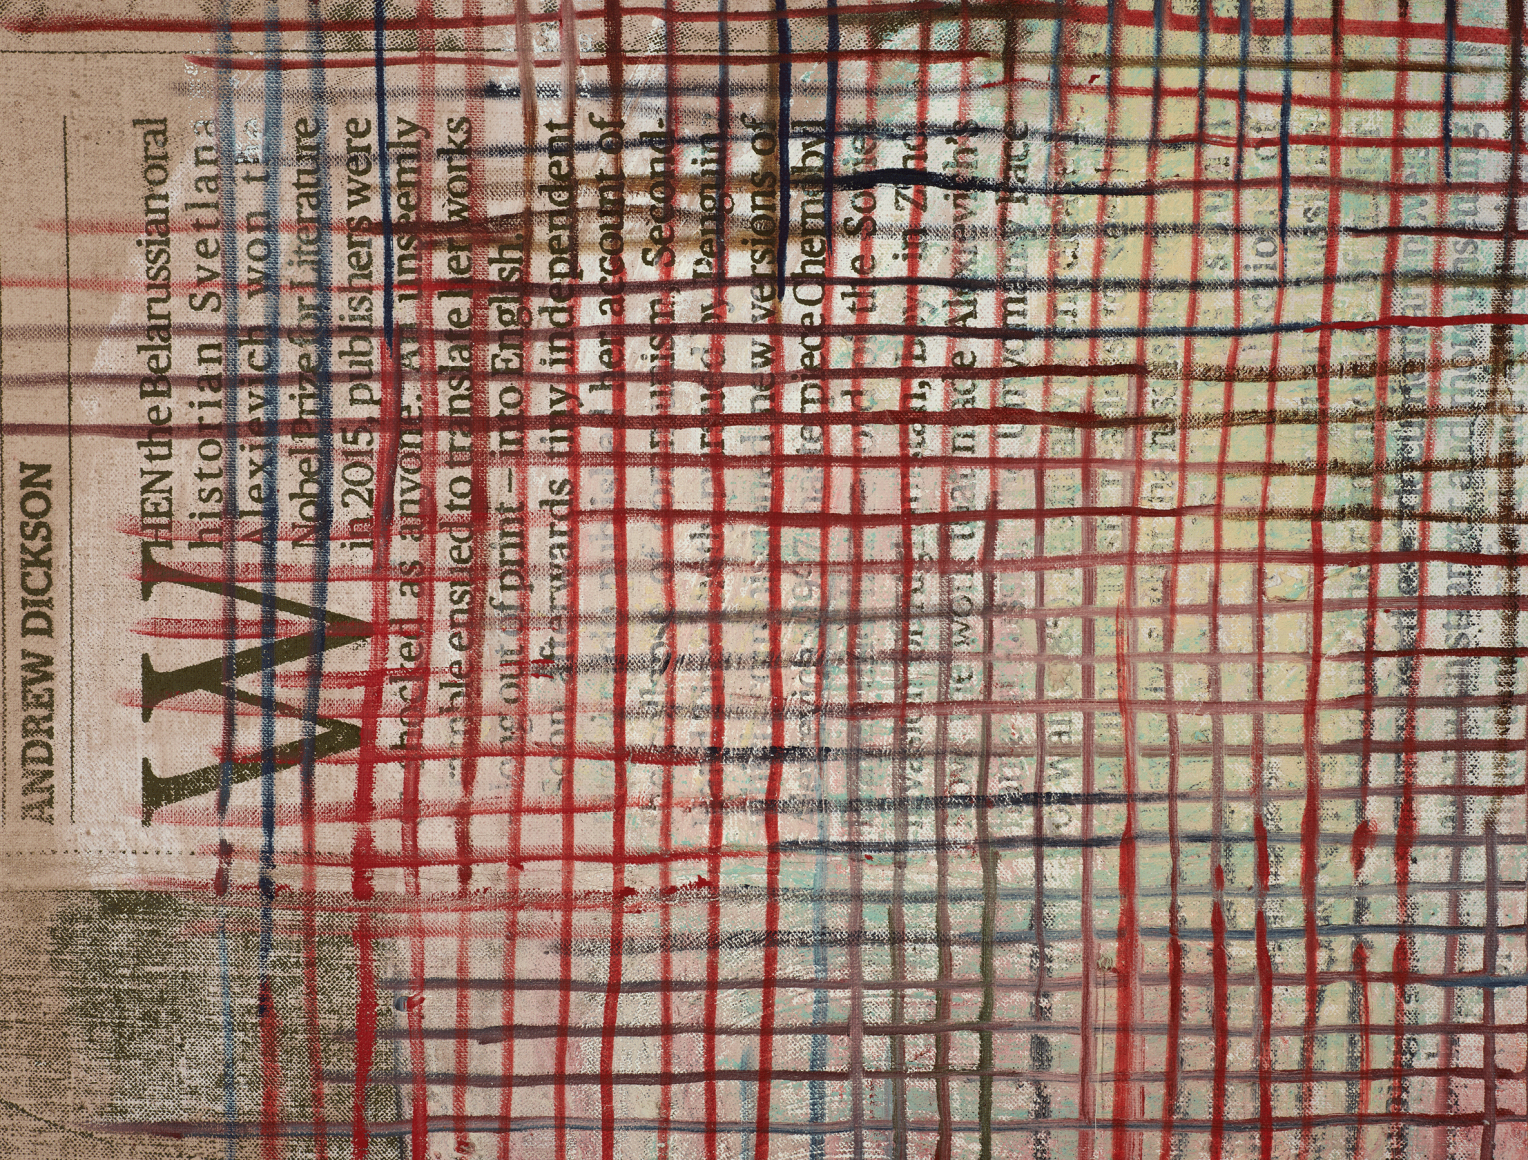 MANDY EL-SAYEGH, Net-Grid (new wave), 2019 (detail)